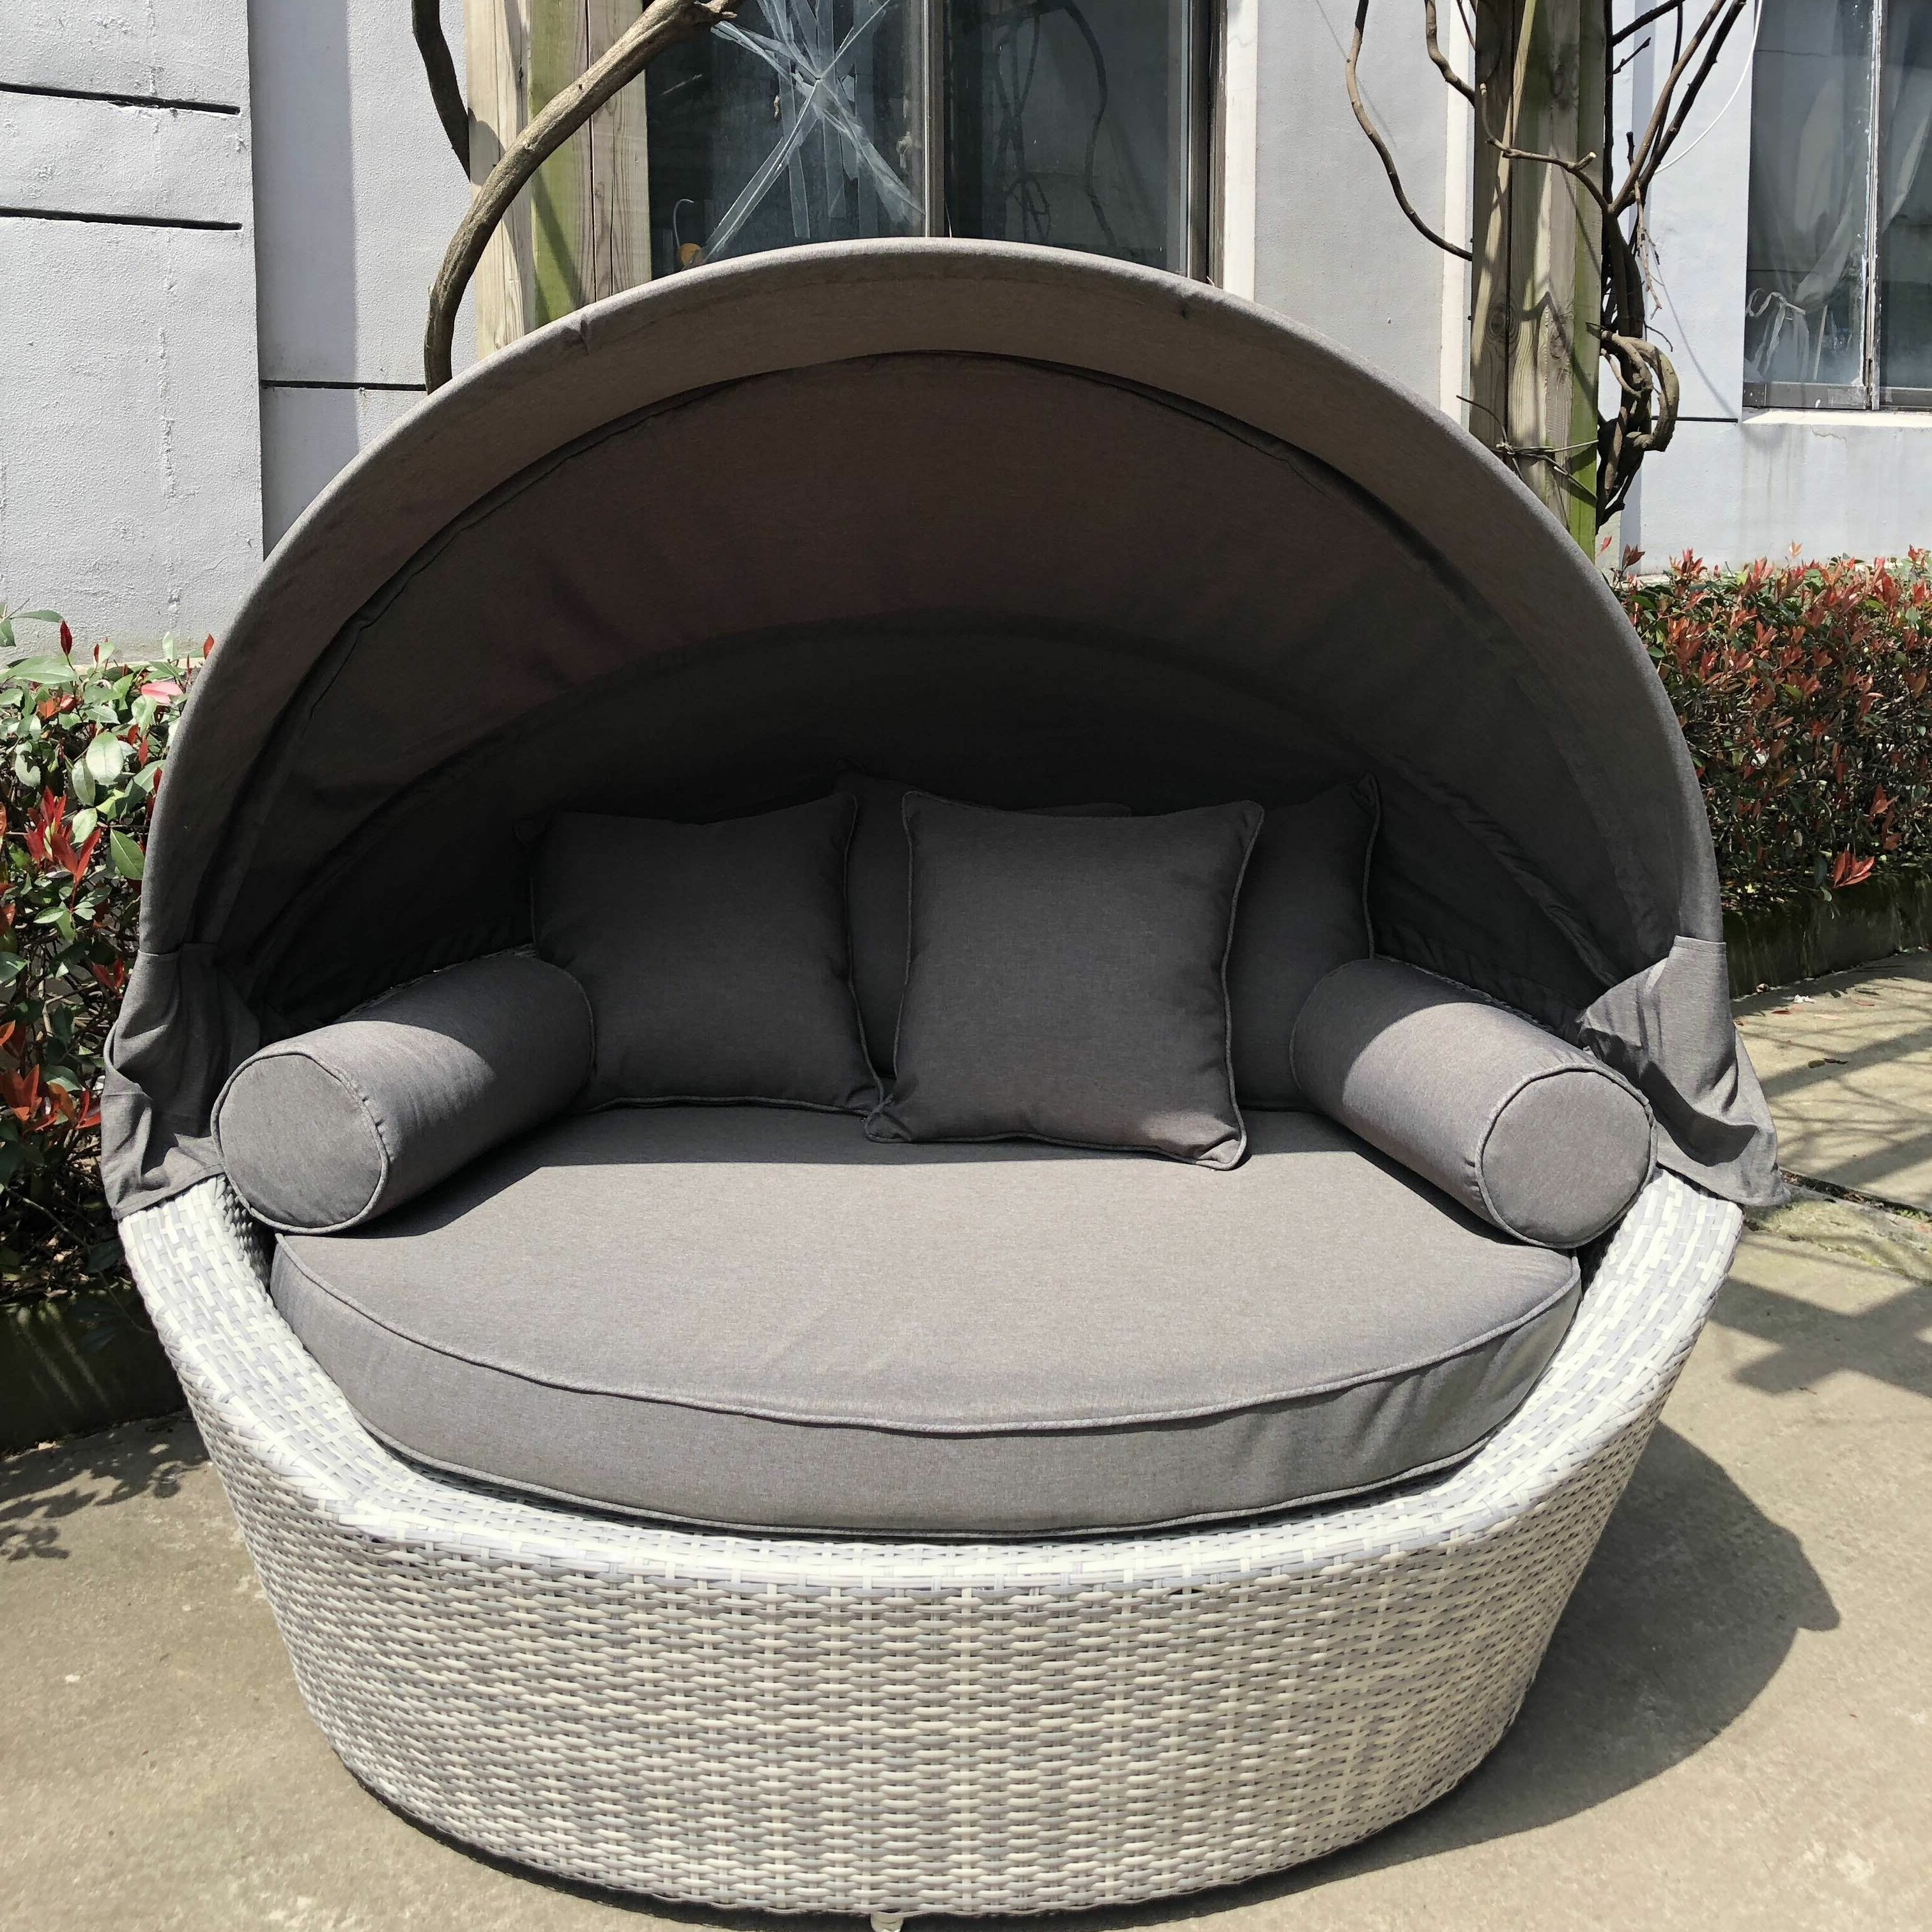 Lammers Outdoor Wicker Daybeds With Cushions For Latest Carrasco Patio Daybed With Cushions (View 6 of 20)